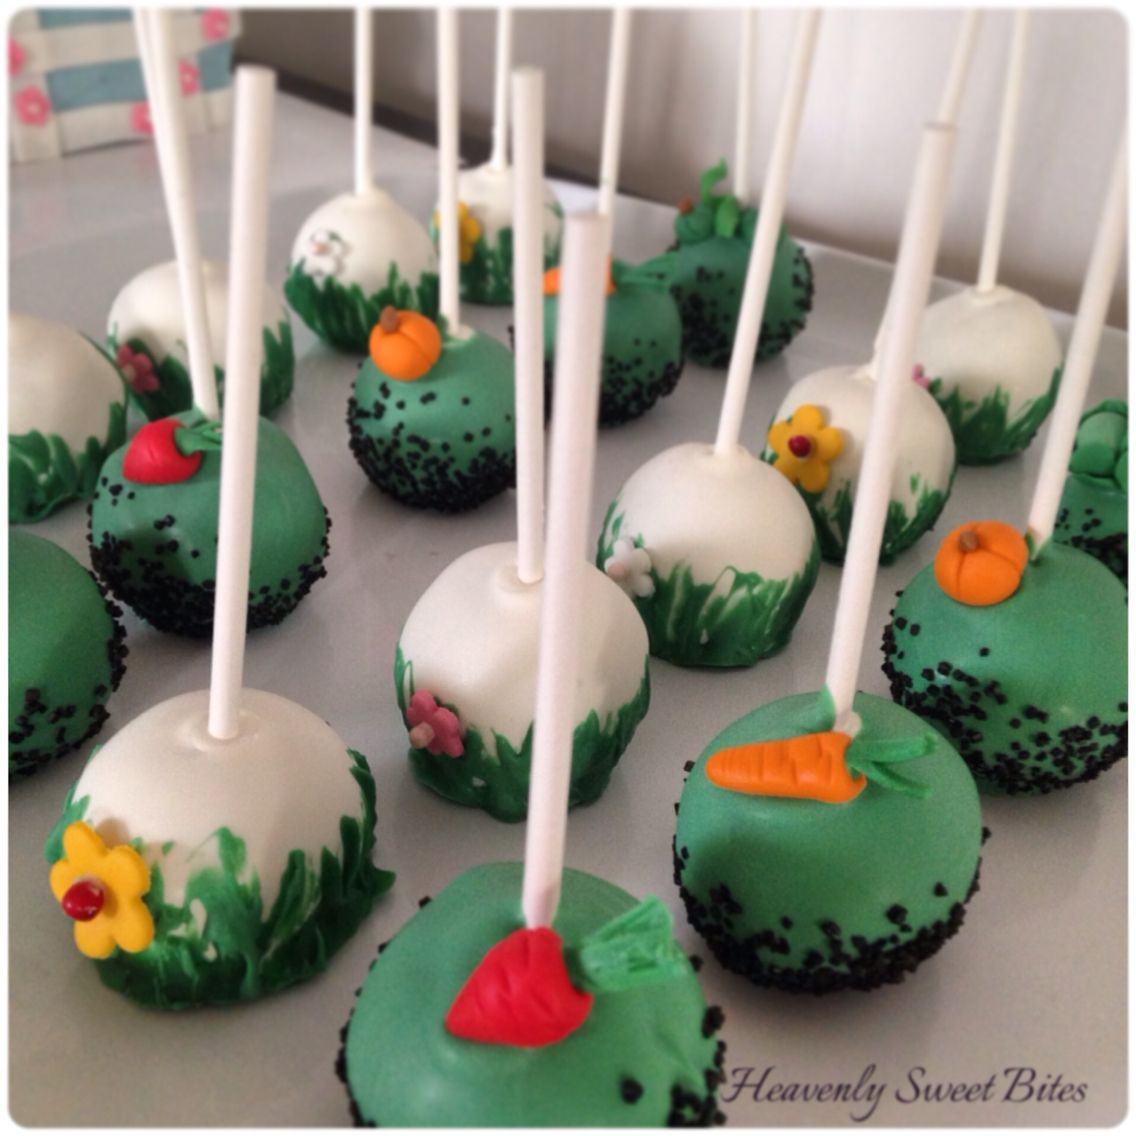 Peter The Rabbit Baby Shower Cake And Cake Pops By Heavenly Sweet